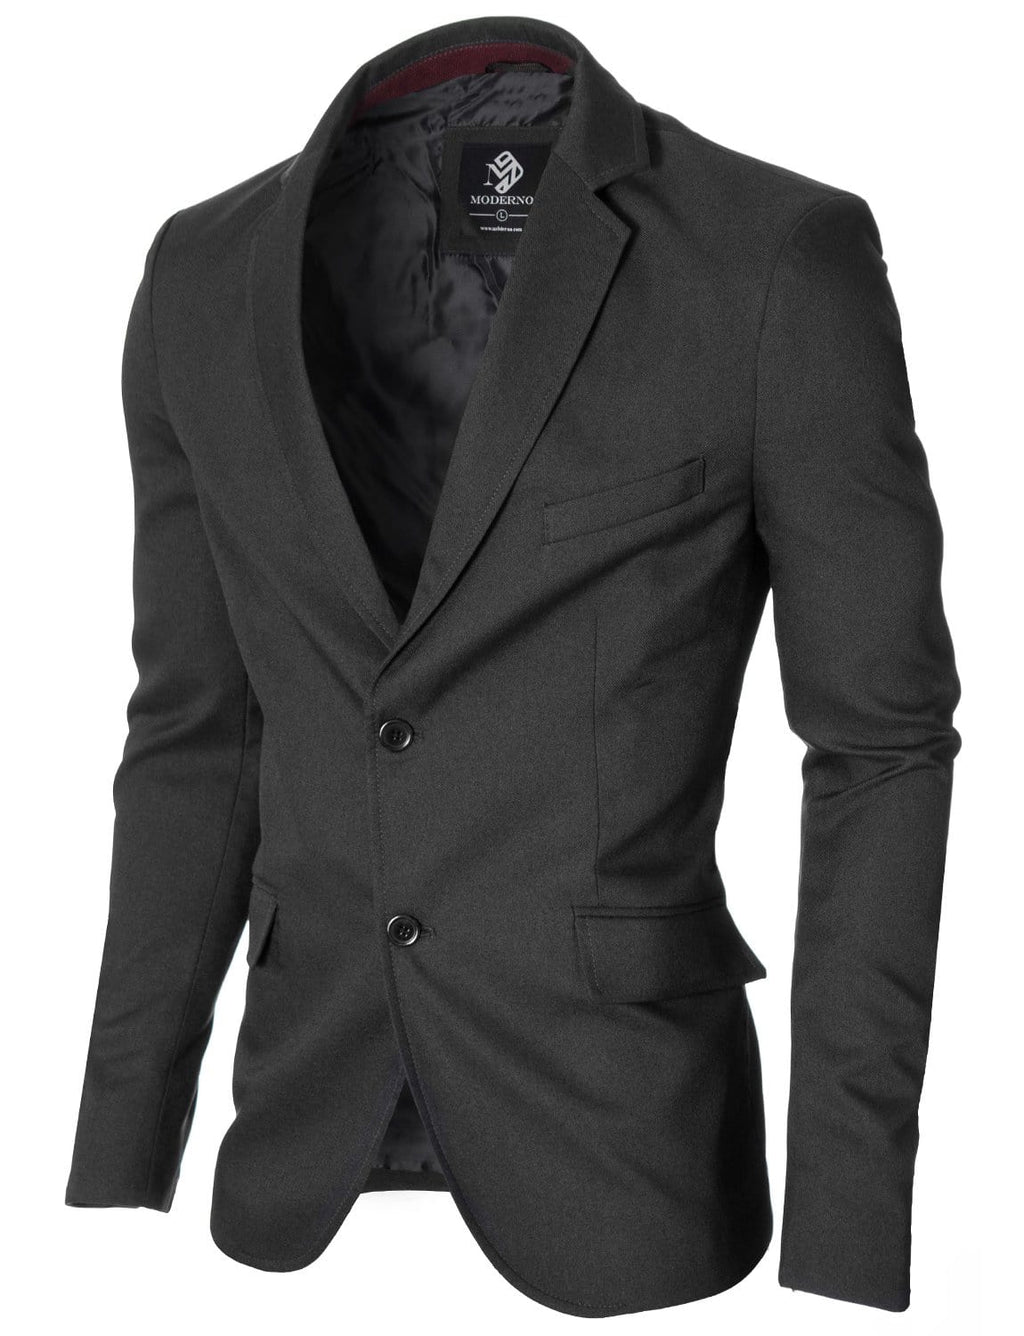 Mens Slim Fit Casual Blazer with Contrast Details Charcoal (MOD14514B)